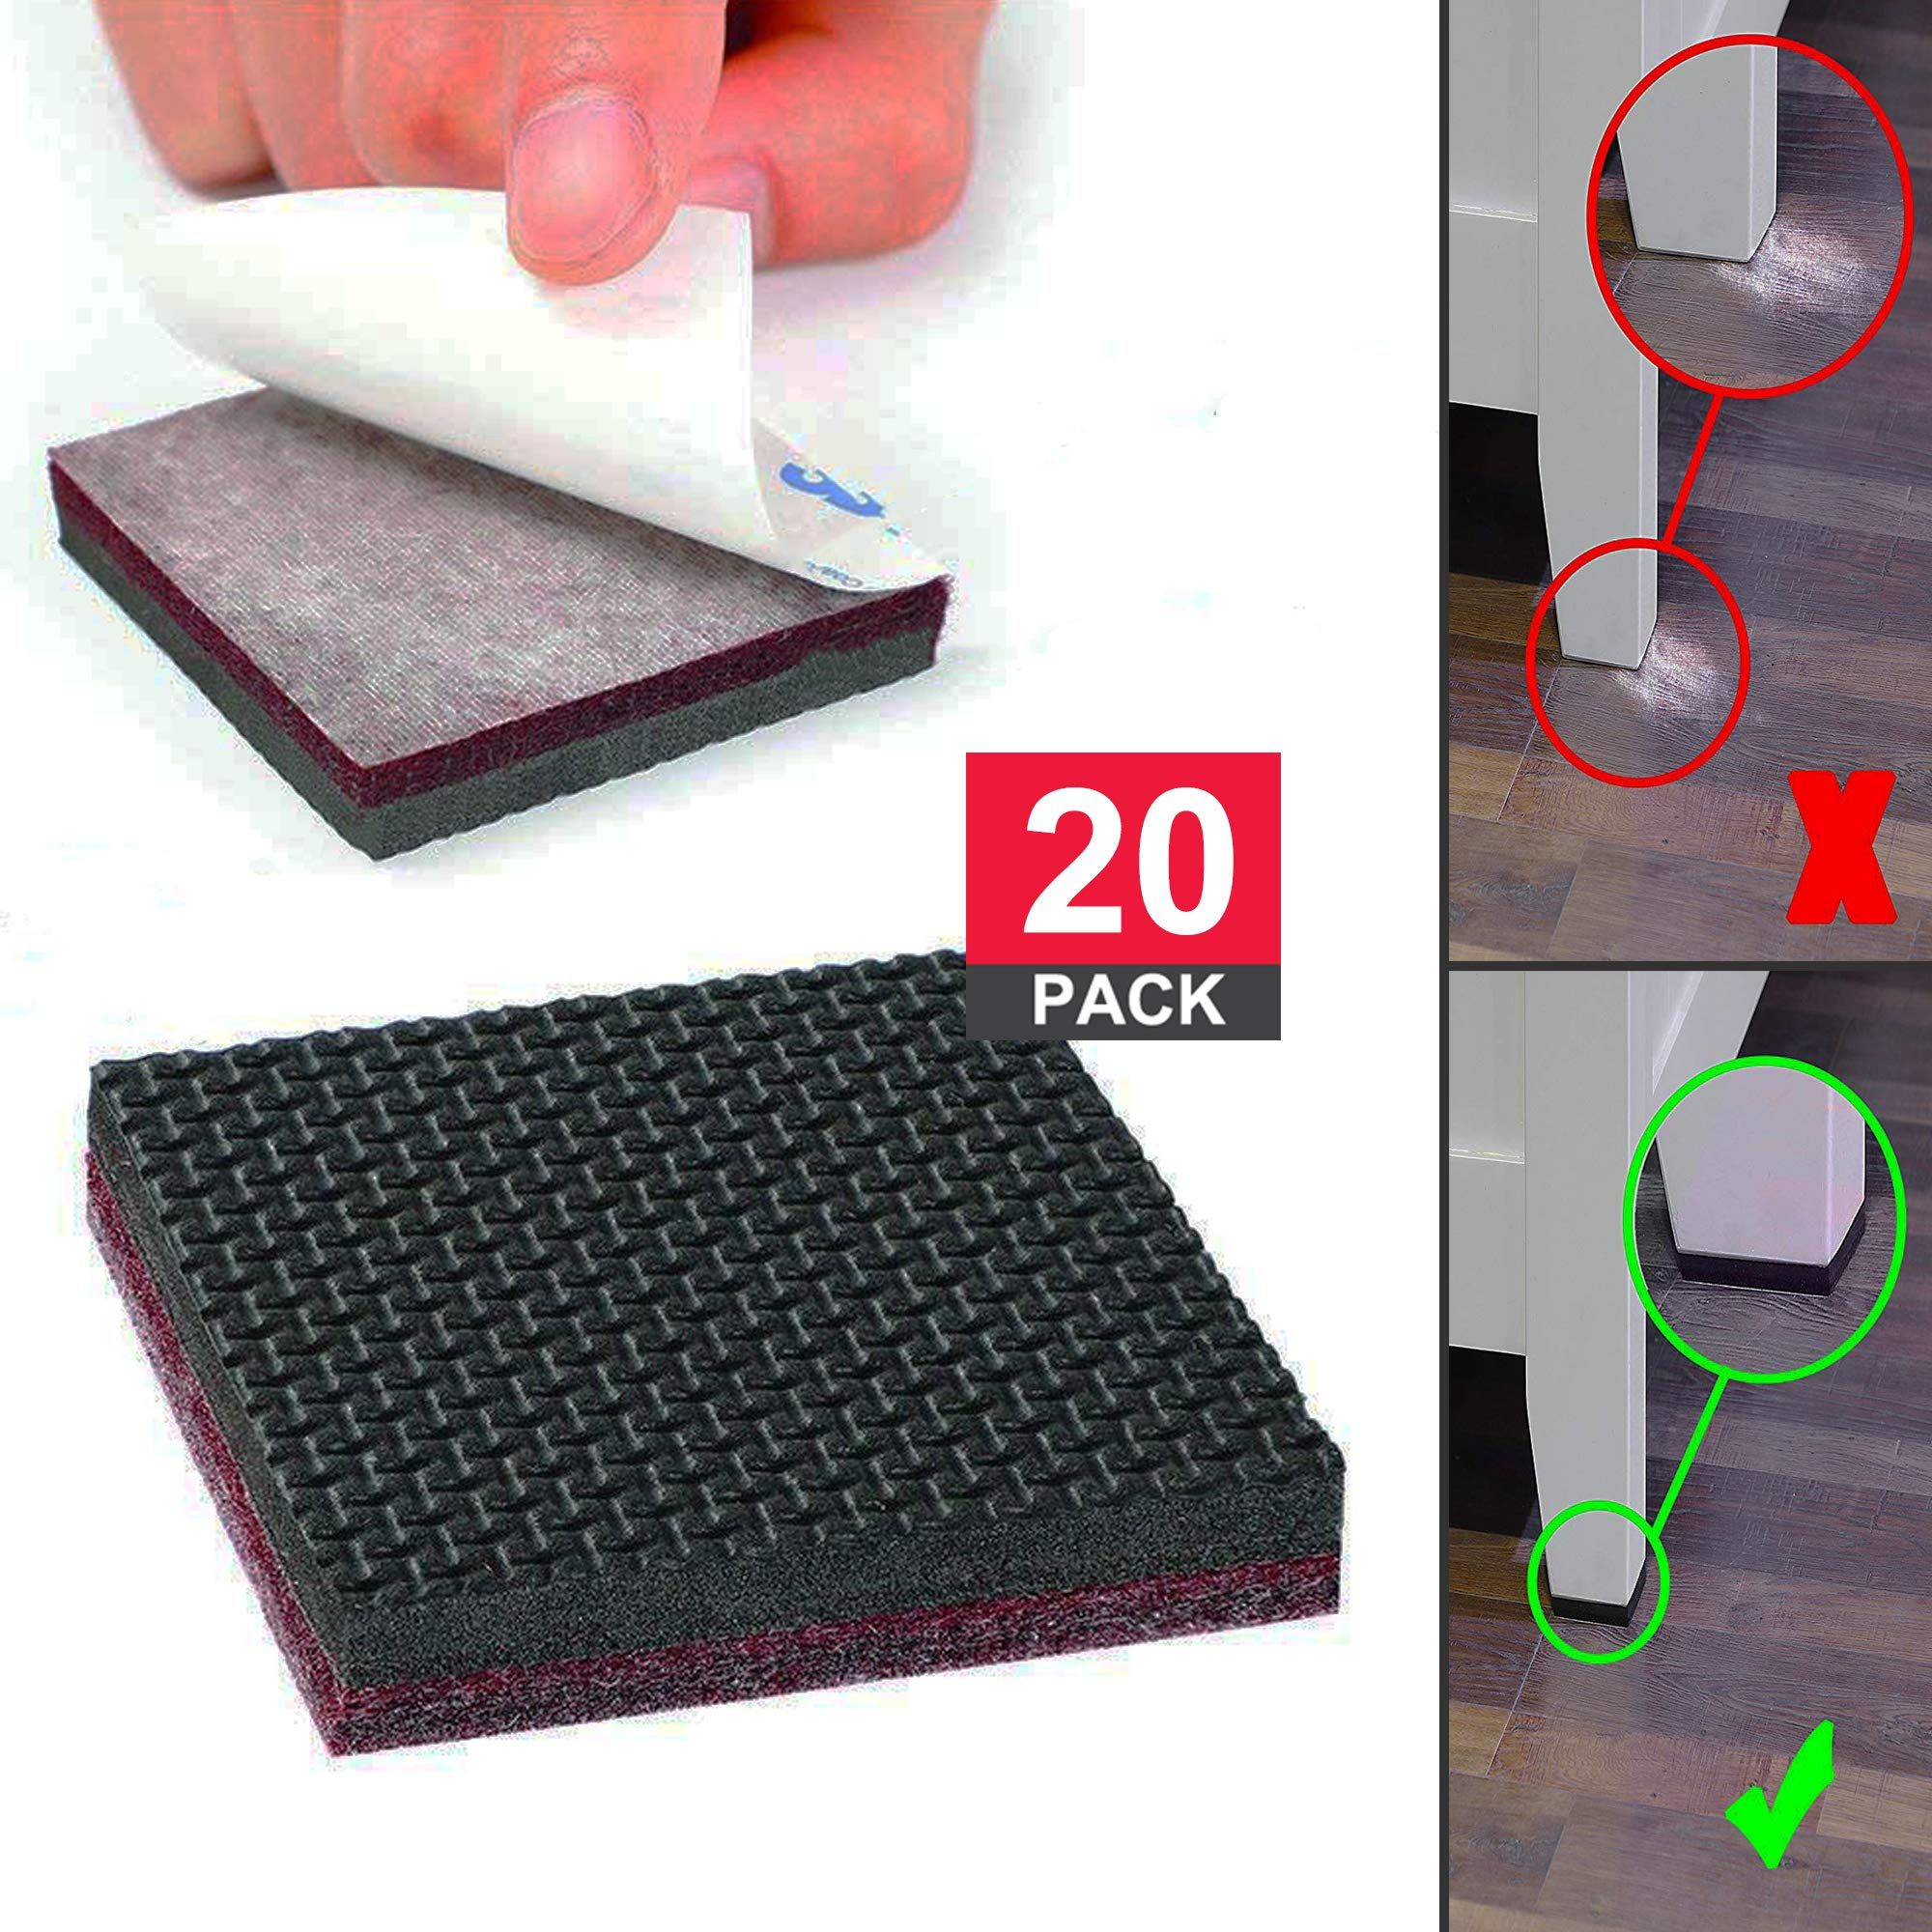 Non Slip Furniture Pads Chair Leg Floor Protectors Self Adhesive Furniture Grippers For Hardwood Furniture Pads Furniture Grippers Chair Leg Floor Protectors